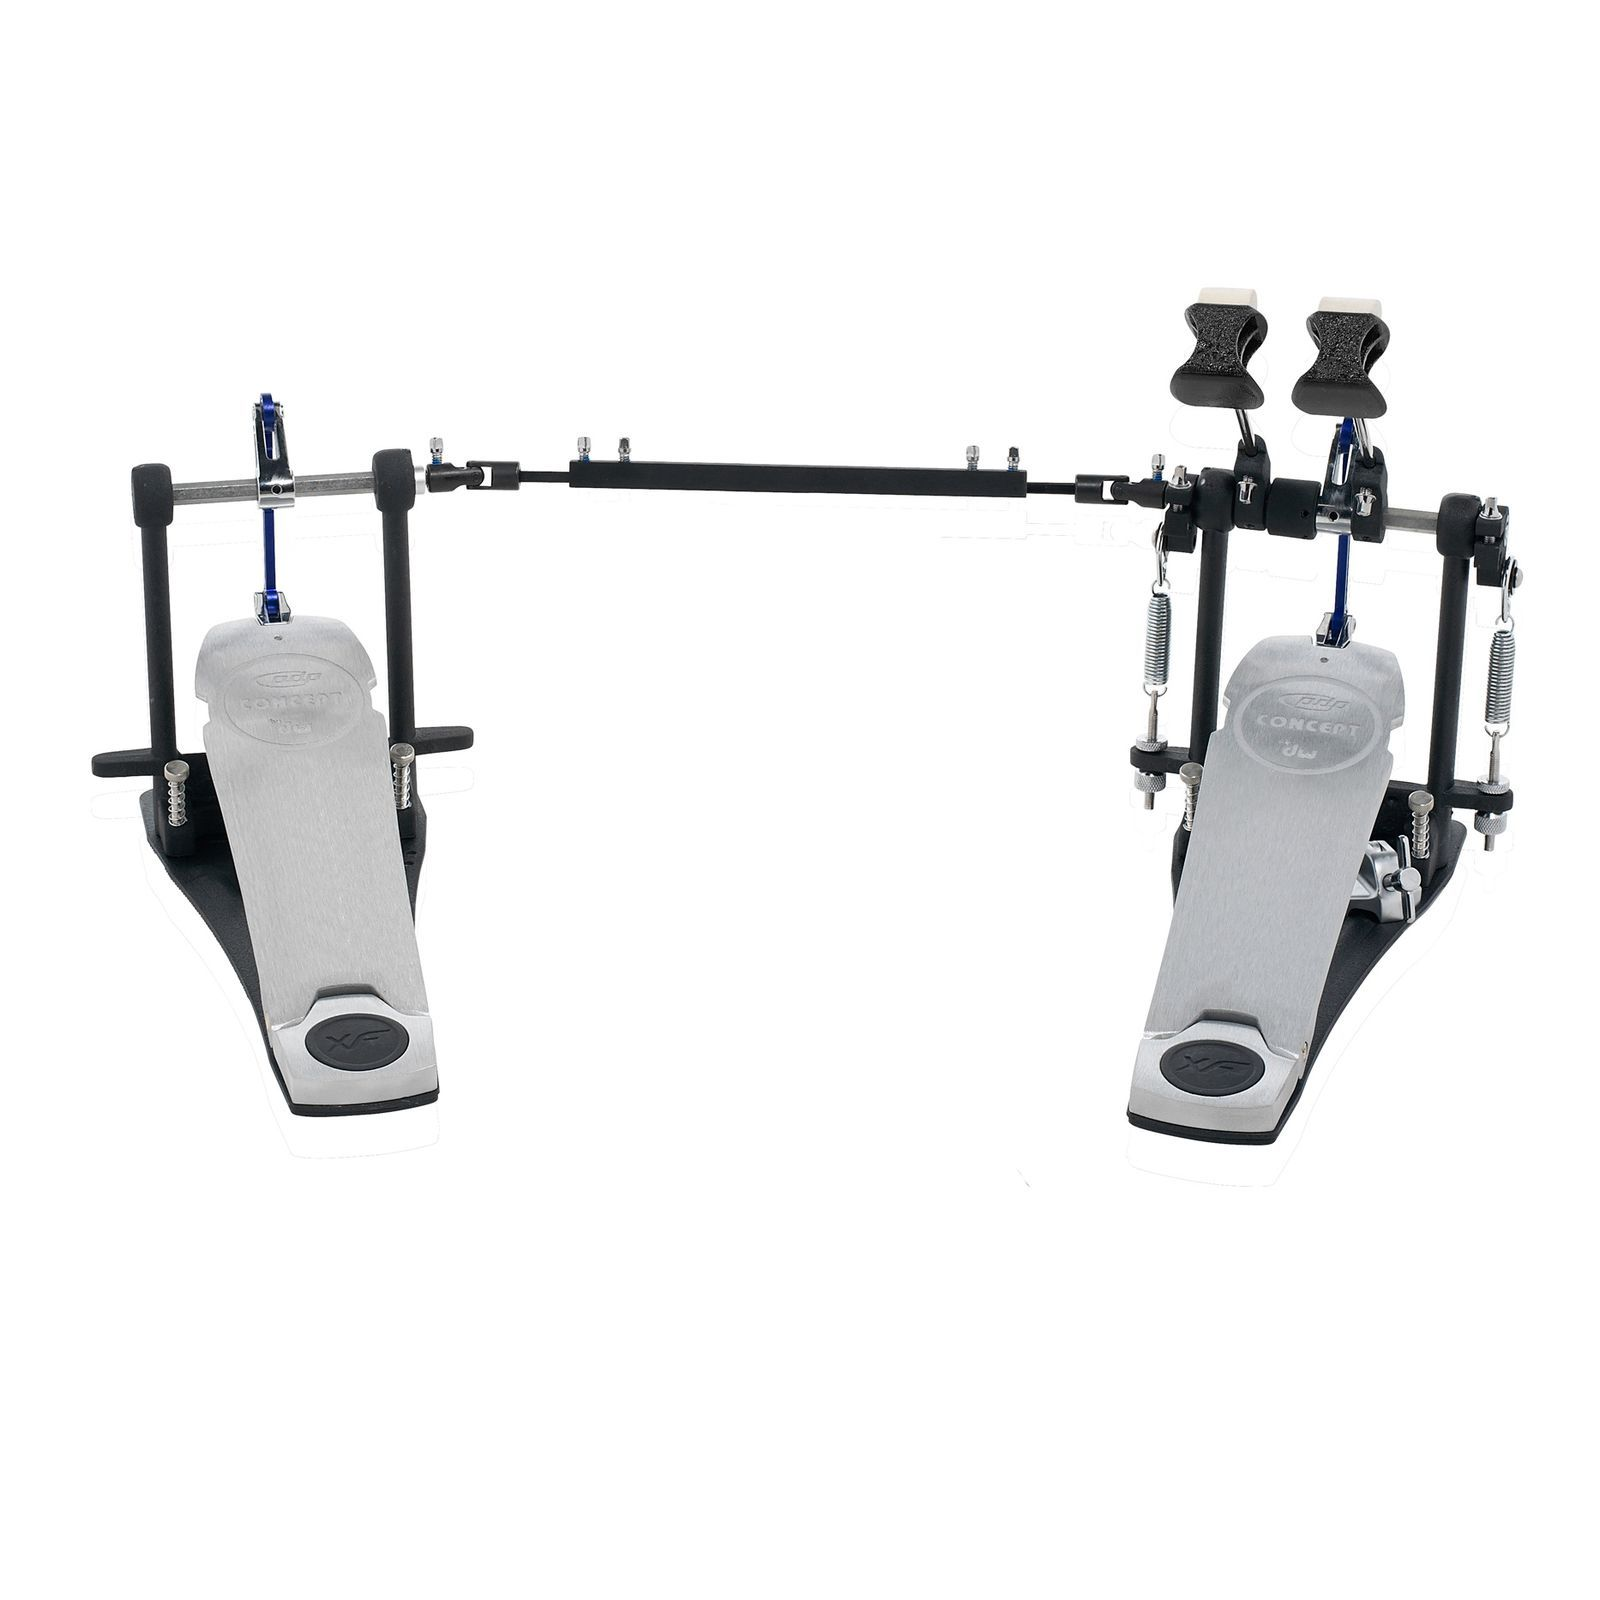 Drum Workshop PDP Double Kick Pedal Concept Direct Drive Produktbillede